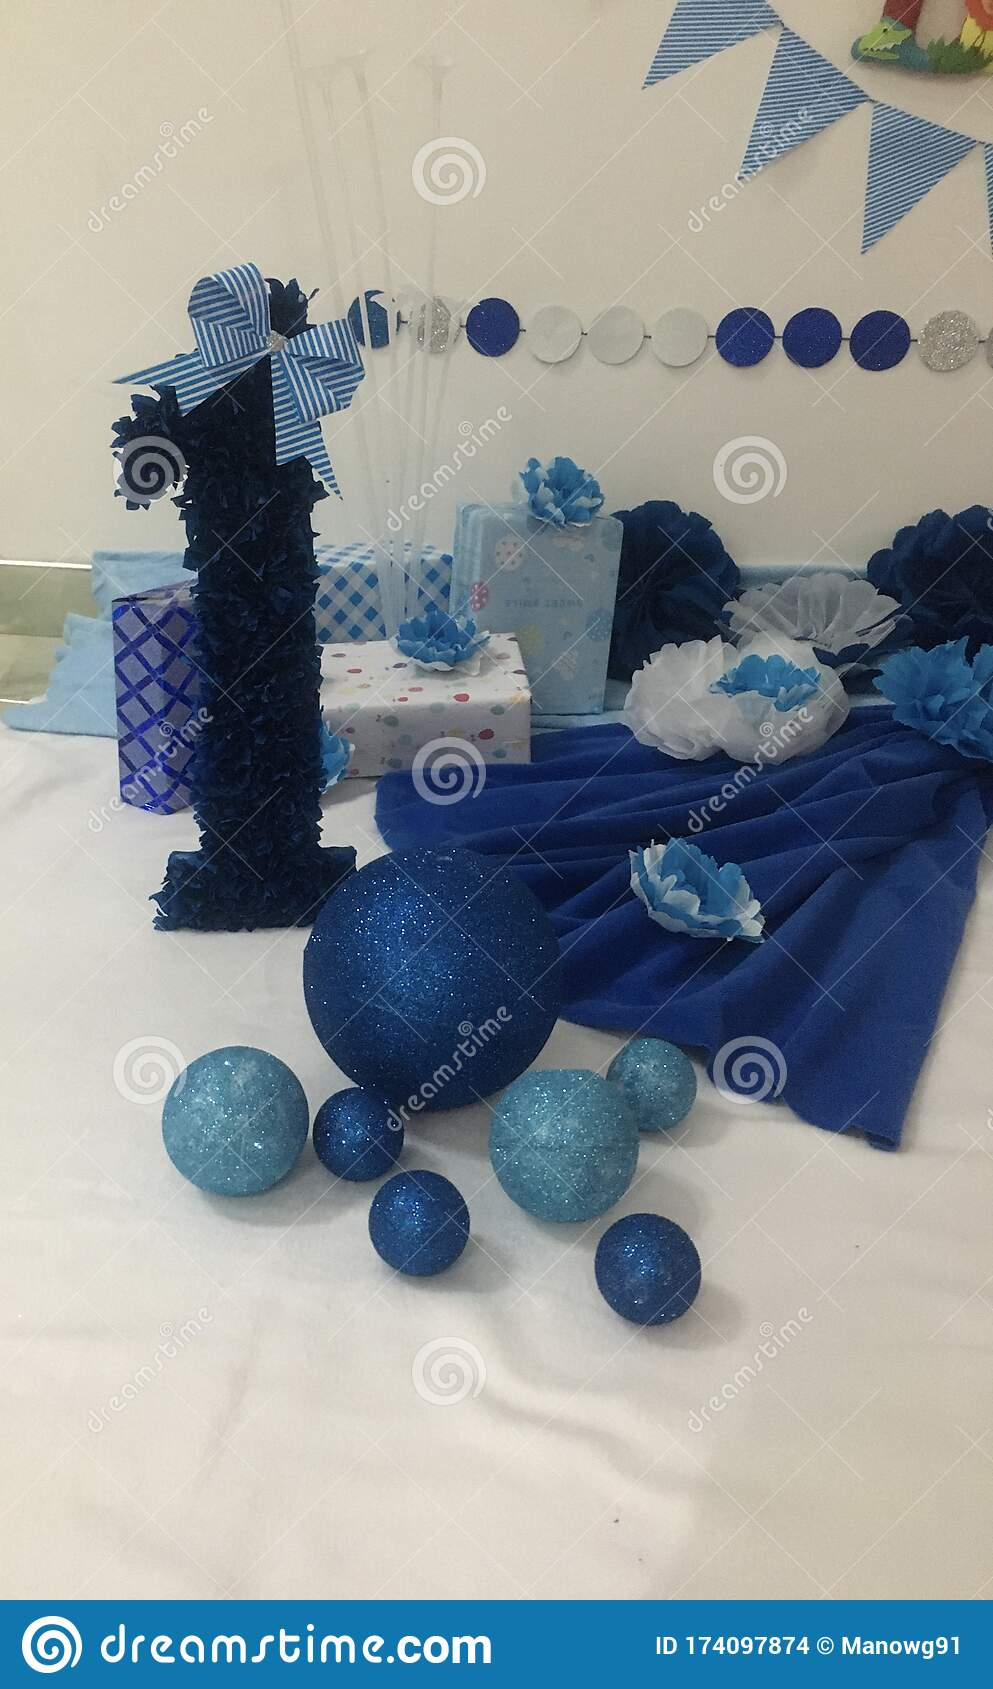 Birthday Decorations For Baby Boy Stock Photo Image Of Paper Arrangements 174097874